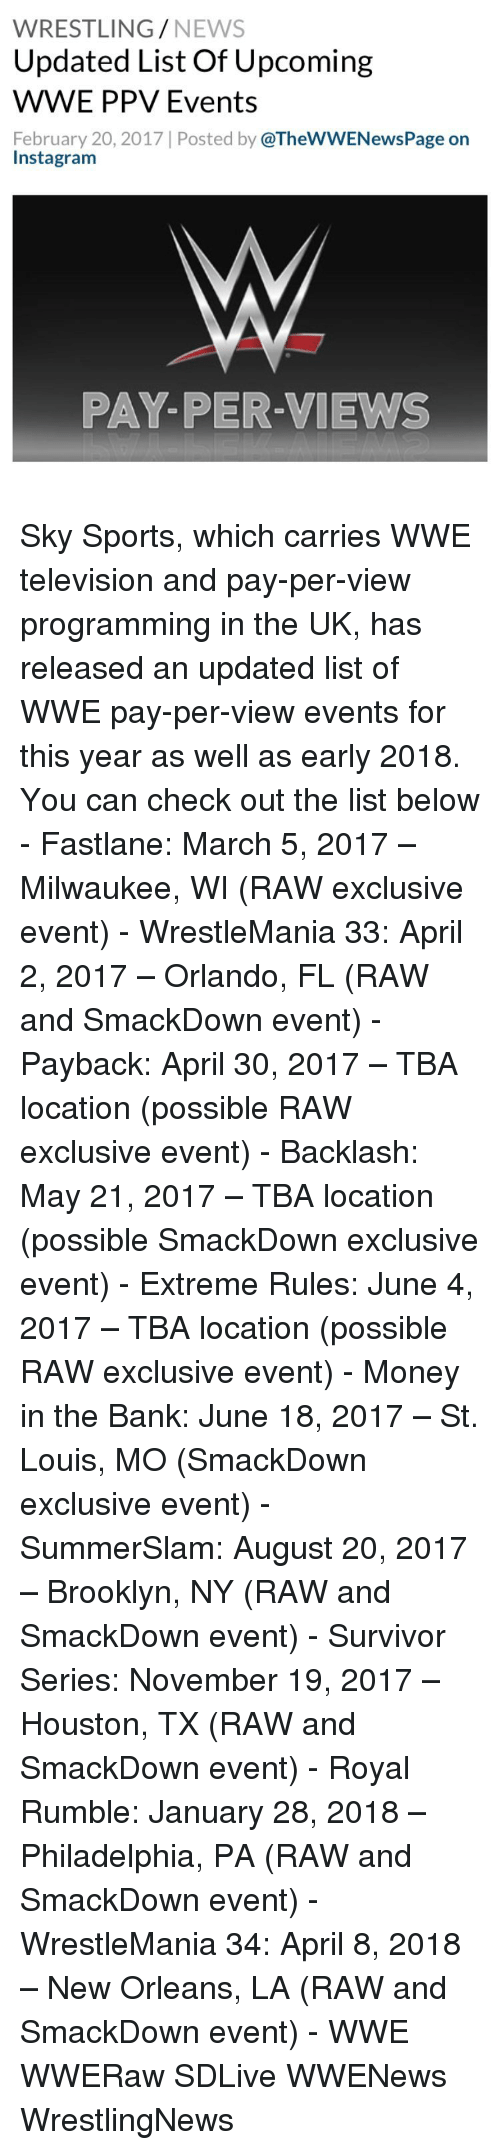 Instagram, Memes, and Money: WRESTLING  NEWS  Updated List Of Upcoming  WWE PPV Events  February 20, 2017 l Posted by  @TheWWENewsPage on  Instagram  PAY-PER-VIEWS Sky Sports, which carries WWE television and pay-per-view programming in the UK, has released an updated list of WWE pay-per-view events for this year as well as early 2018. You can check out the list below - Fastlane: March 5, 2017 – Milwaukee, WI (RAW exclusive event) - WrestleMania 33: April 2, 2017 – Orlando, FL (RAW and SmackDown event) - Payback: April 30, 2017 – TBA location (possible RAW exclusive event) - Backlash: May 21, 2017 – TBA location (possible SmackDown exclusive event) - Extreme Rules: June 4, 2017 – TBA location (possible RAW exclusive event) - Money in the Bank: June 18, 2017 – St. Louis, MO (SmackDown exclusive event) - SummerSlam: August 20, 2017 – Brooklyn, NY (RAW and SmackDown event) - Survivor Series: November 19, 2017 – Houston, TX (RAW and SmackDown event) - Royal Rumble: January 28, 2018 – Philadelphia, PA (RAW and SmackDown event) - WrestleMania 34: April 8, 2018 – New Orleans, LA (RAW and SmackDown event) - WWE WWERaw SDLive WWENews WrestlingNews